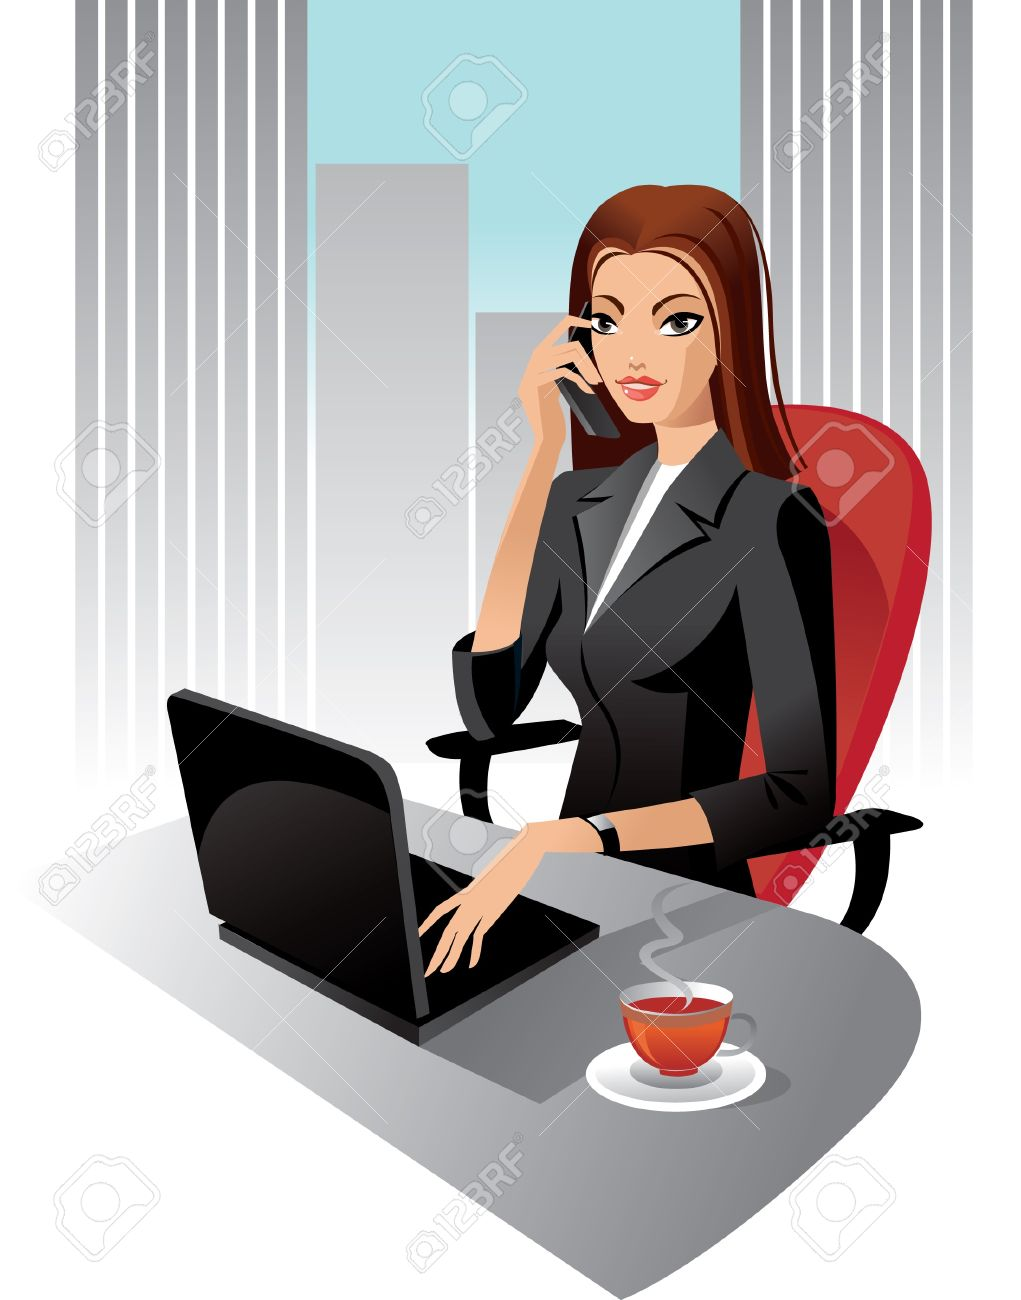 Illustration of business woman in office Stock Vector - 15857925